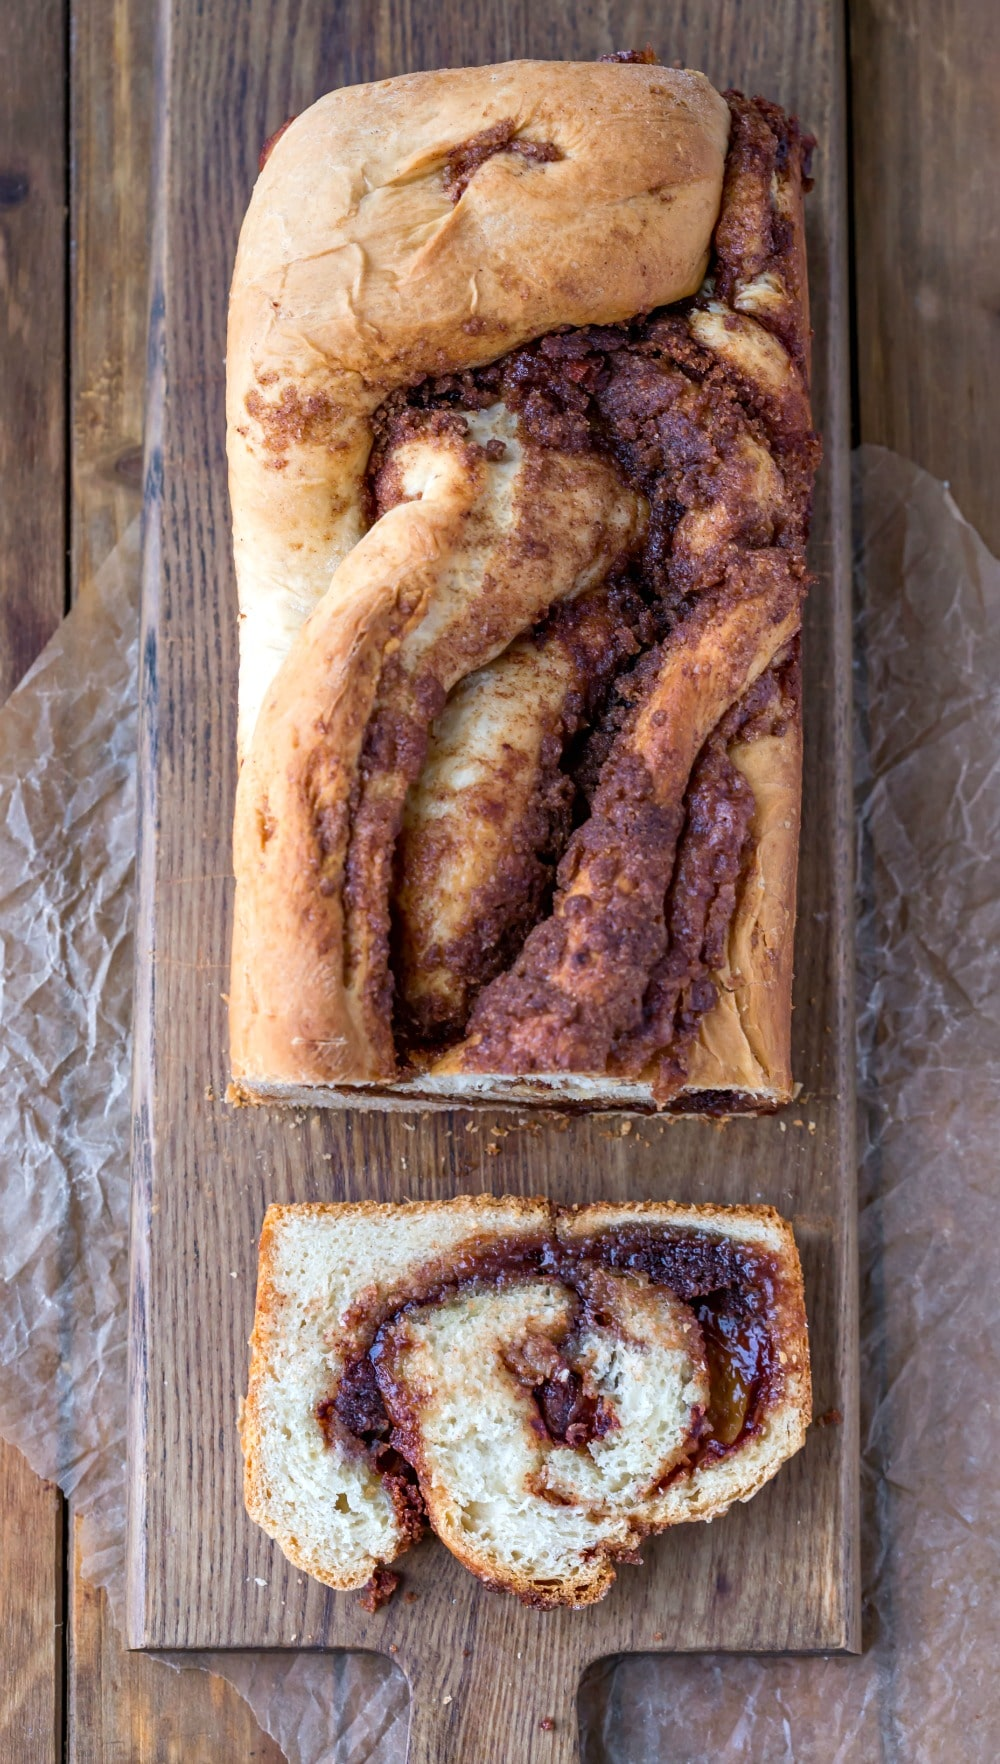 Cinnamon Twist Bread with a slice cut